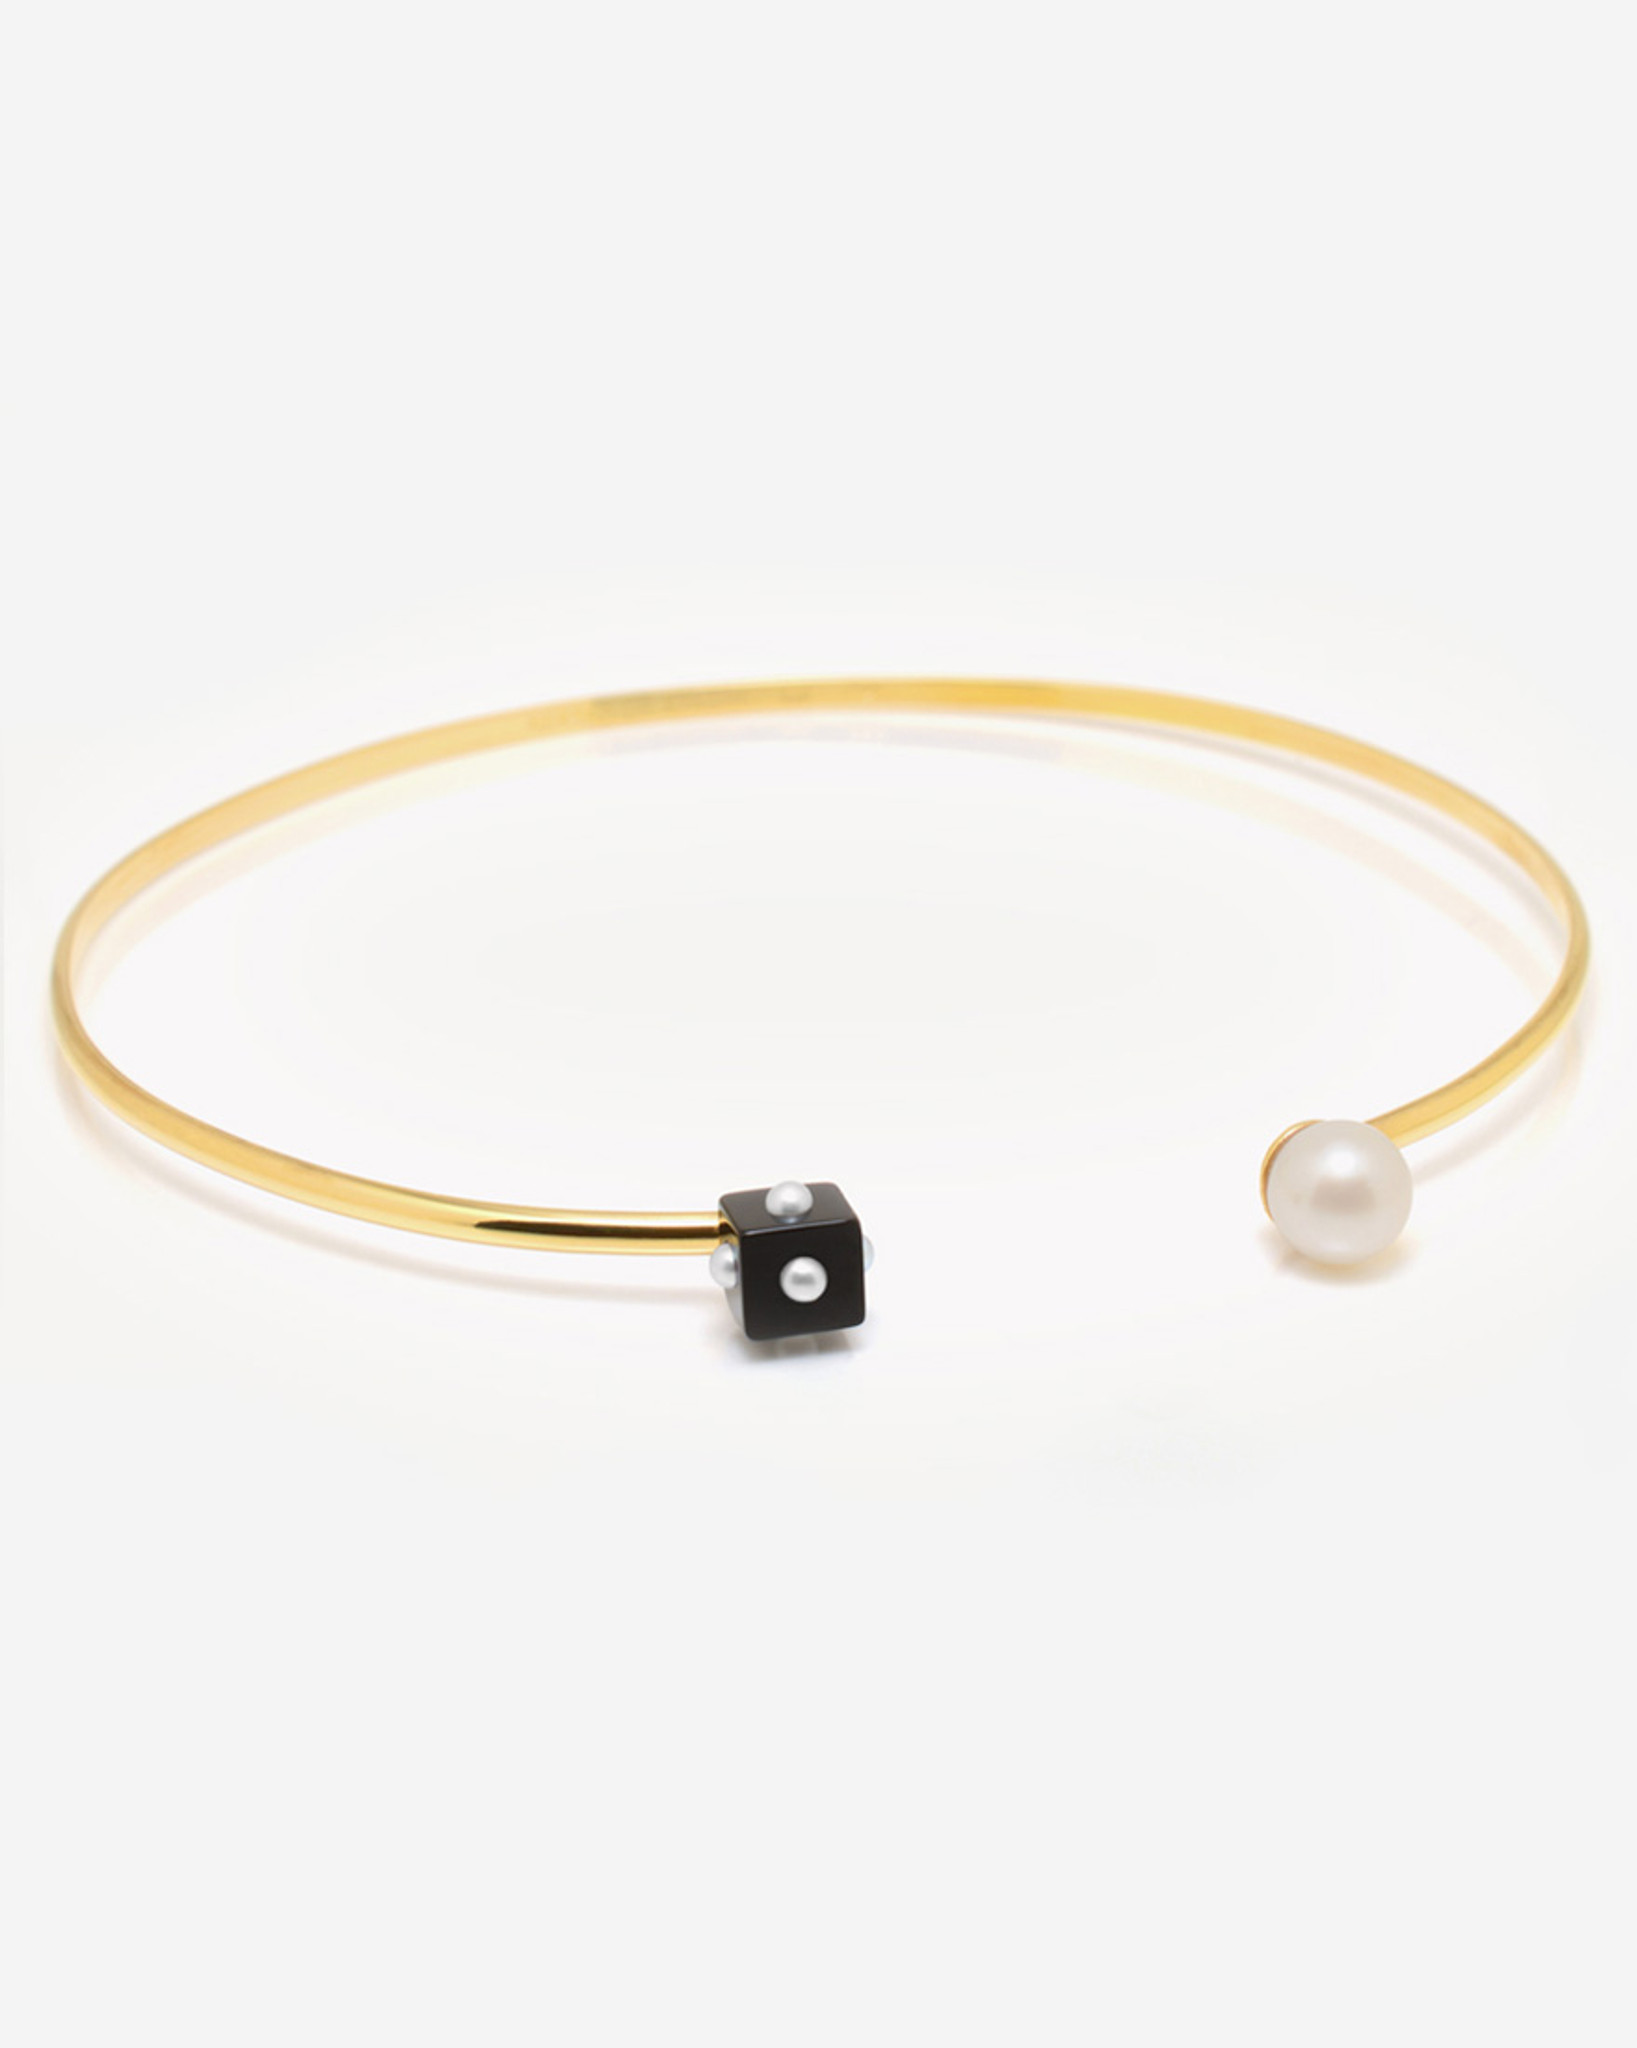 Mini Pearl Onyx Cube & Pearl Choker Necklace in 14k Gold by Jewelry Designer Nektar De Stagni (8-9 mm)